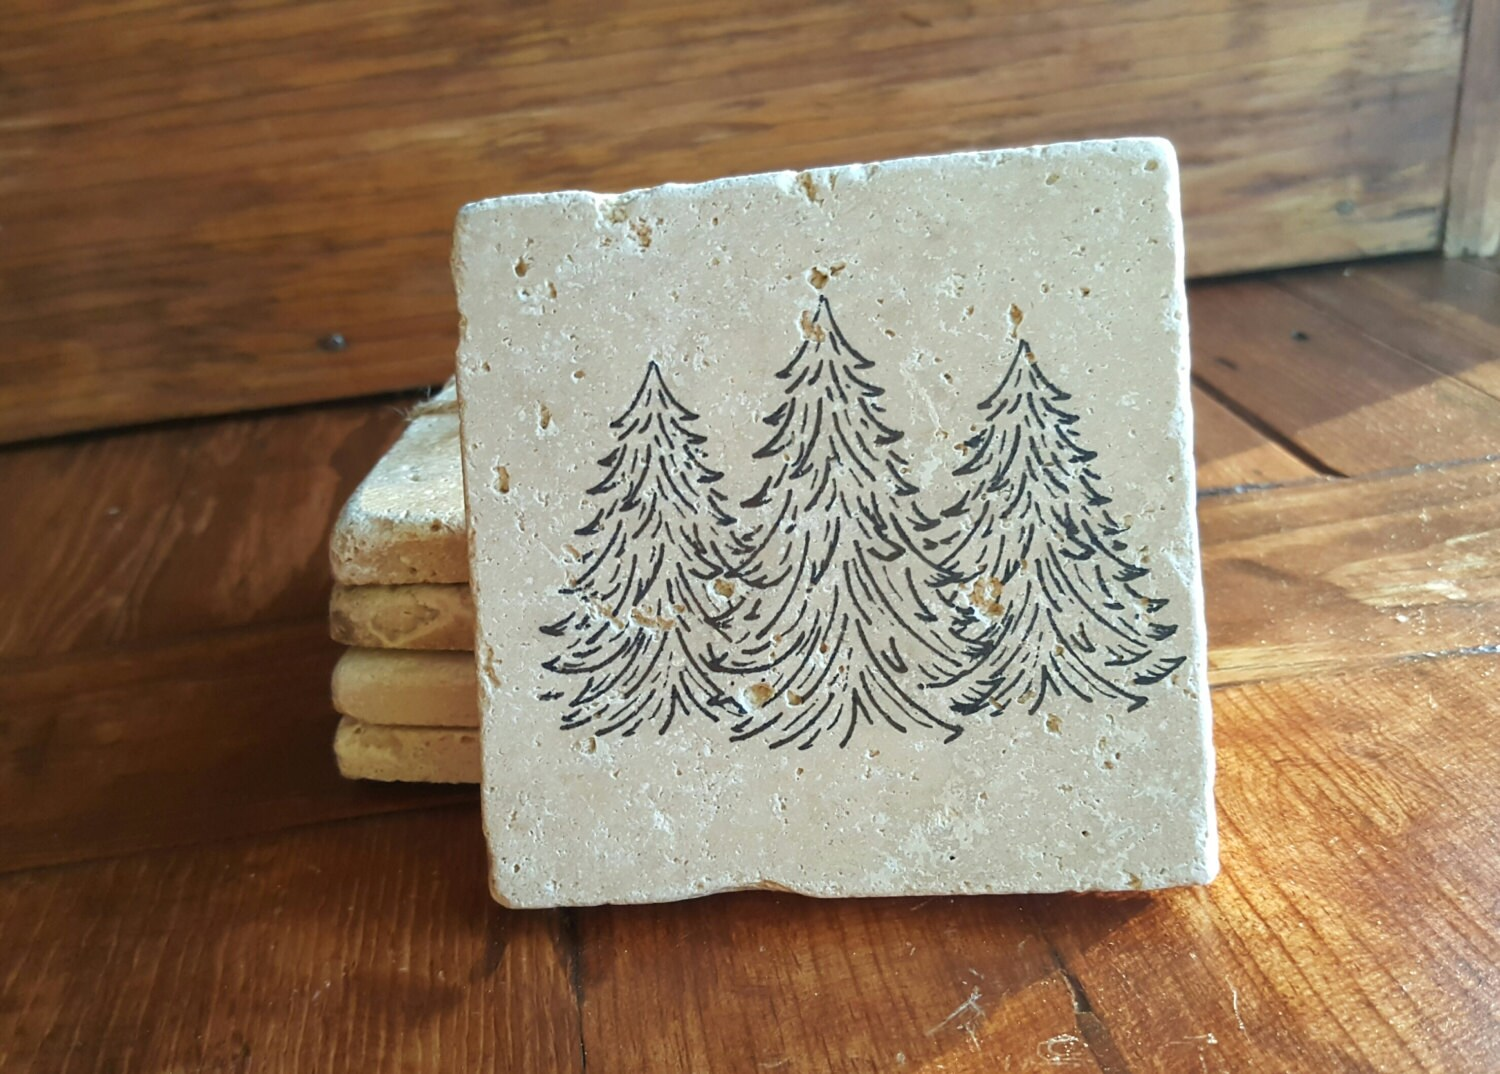 Coasters Cabin Gift Ideas Housewarming Gift New Home Gift Cabin Gifts Fathers Day Hunting Cabin Decor Rustic Decor Tree Coaster